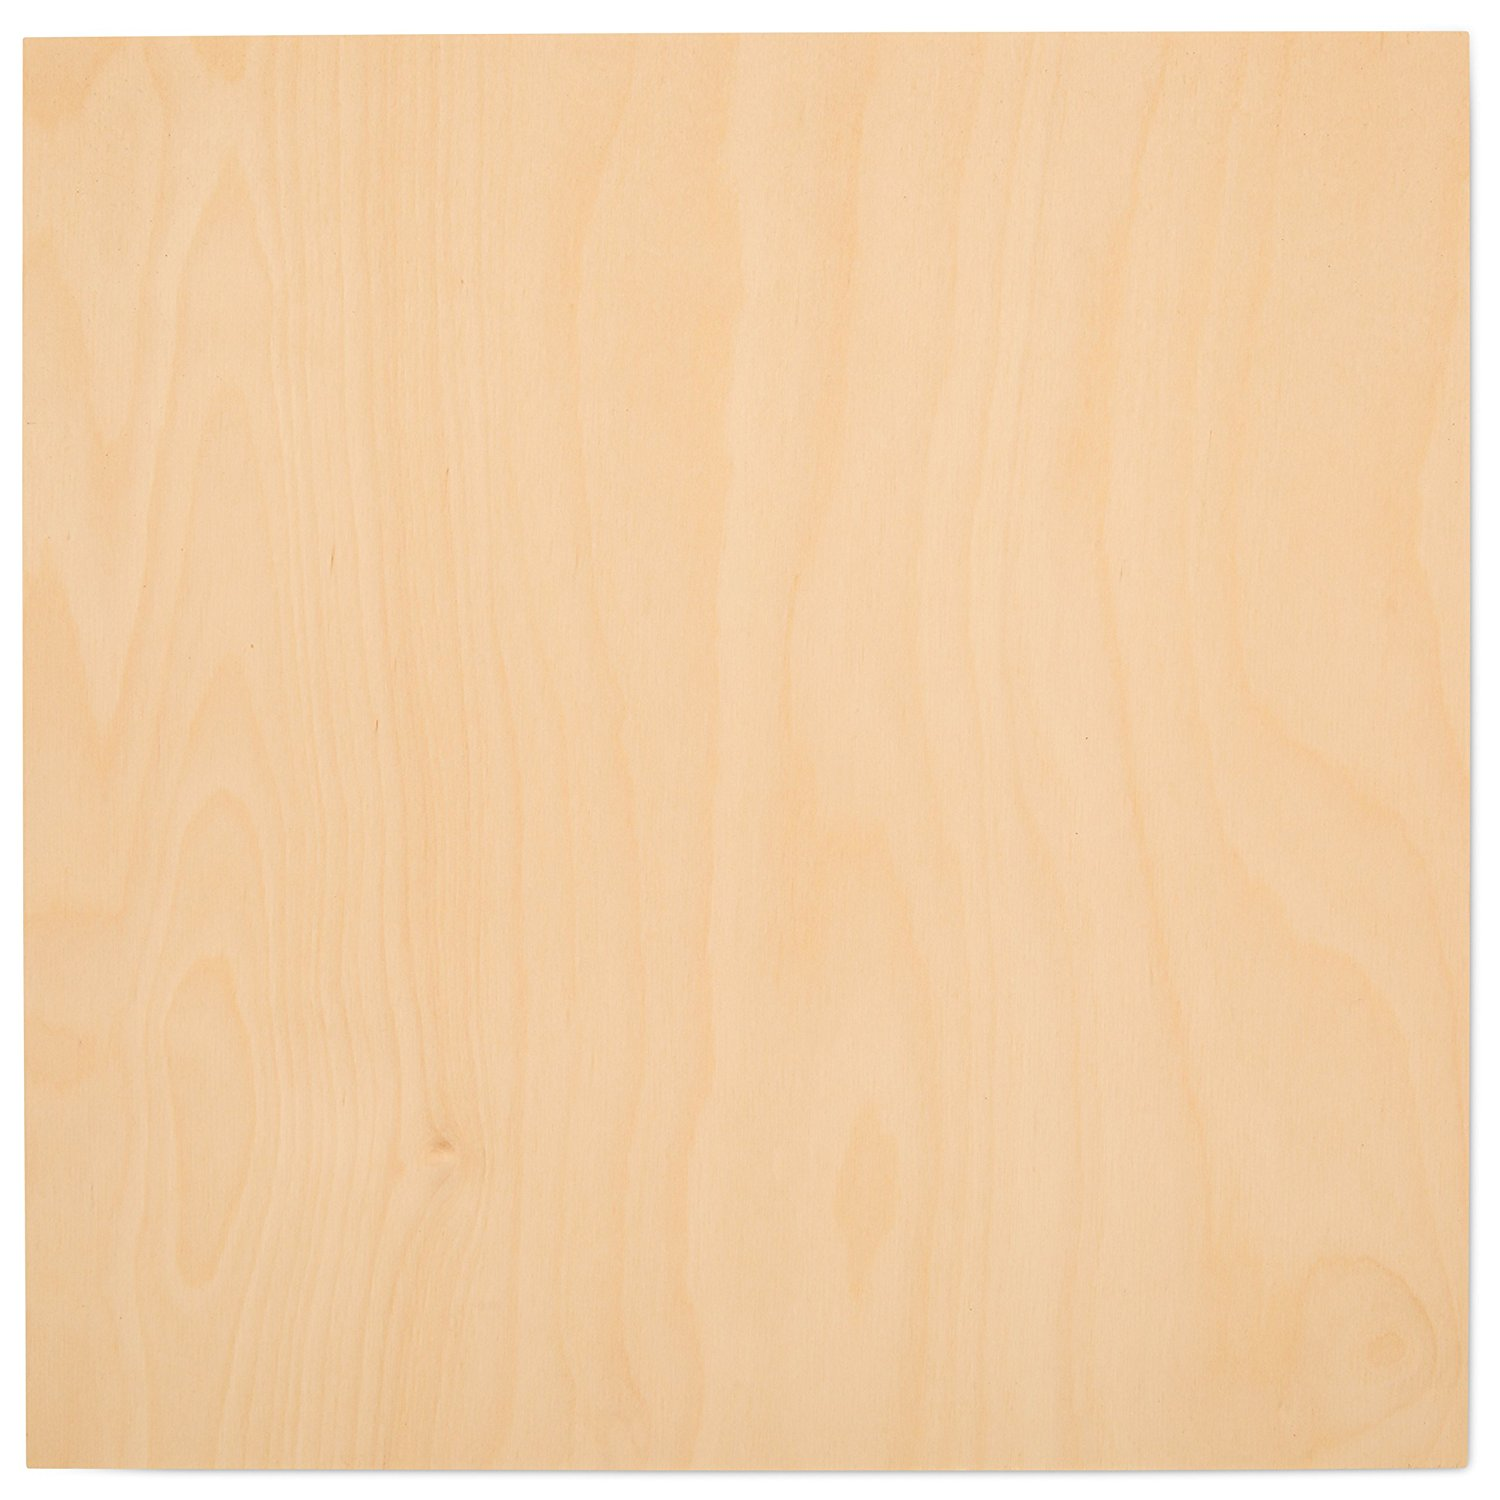 "3 mm 1/8"" X 12"" X 12"" Premium Baltic Birch Plywood – B/BB Grade - 8 Flat Sheets By Woodpeckers"